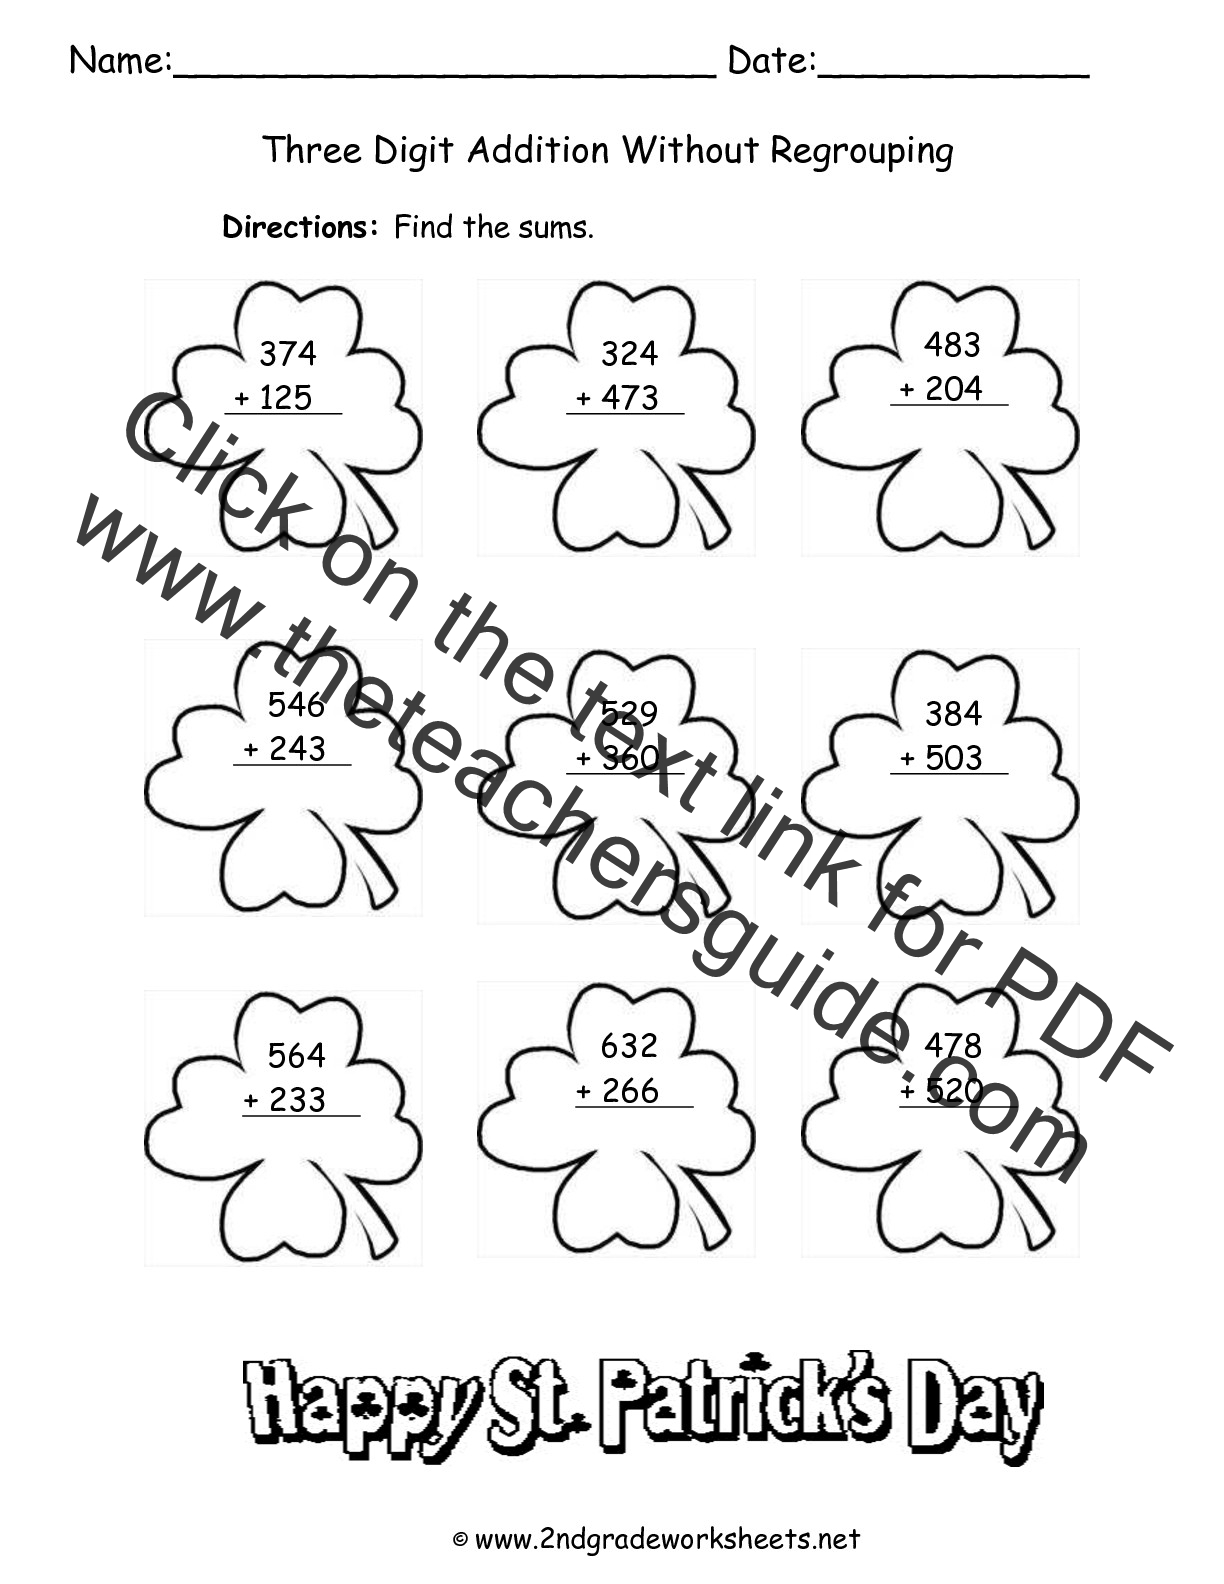 St Patricks Day Printouts and Worksheets – 2 Digit Addition with Regrouping Worksheet